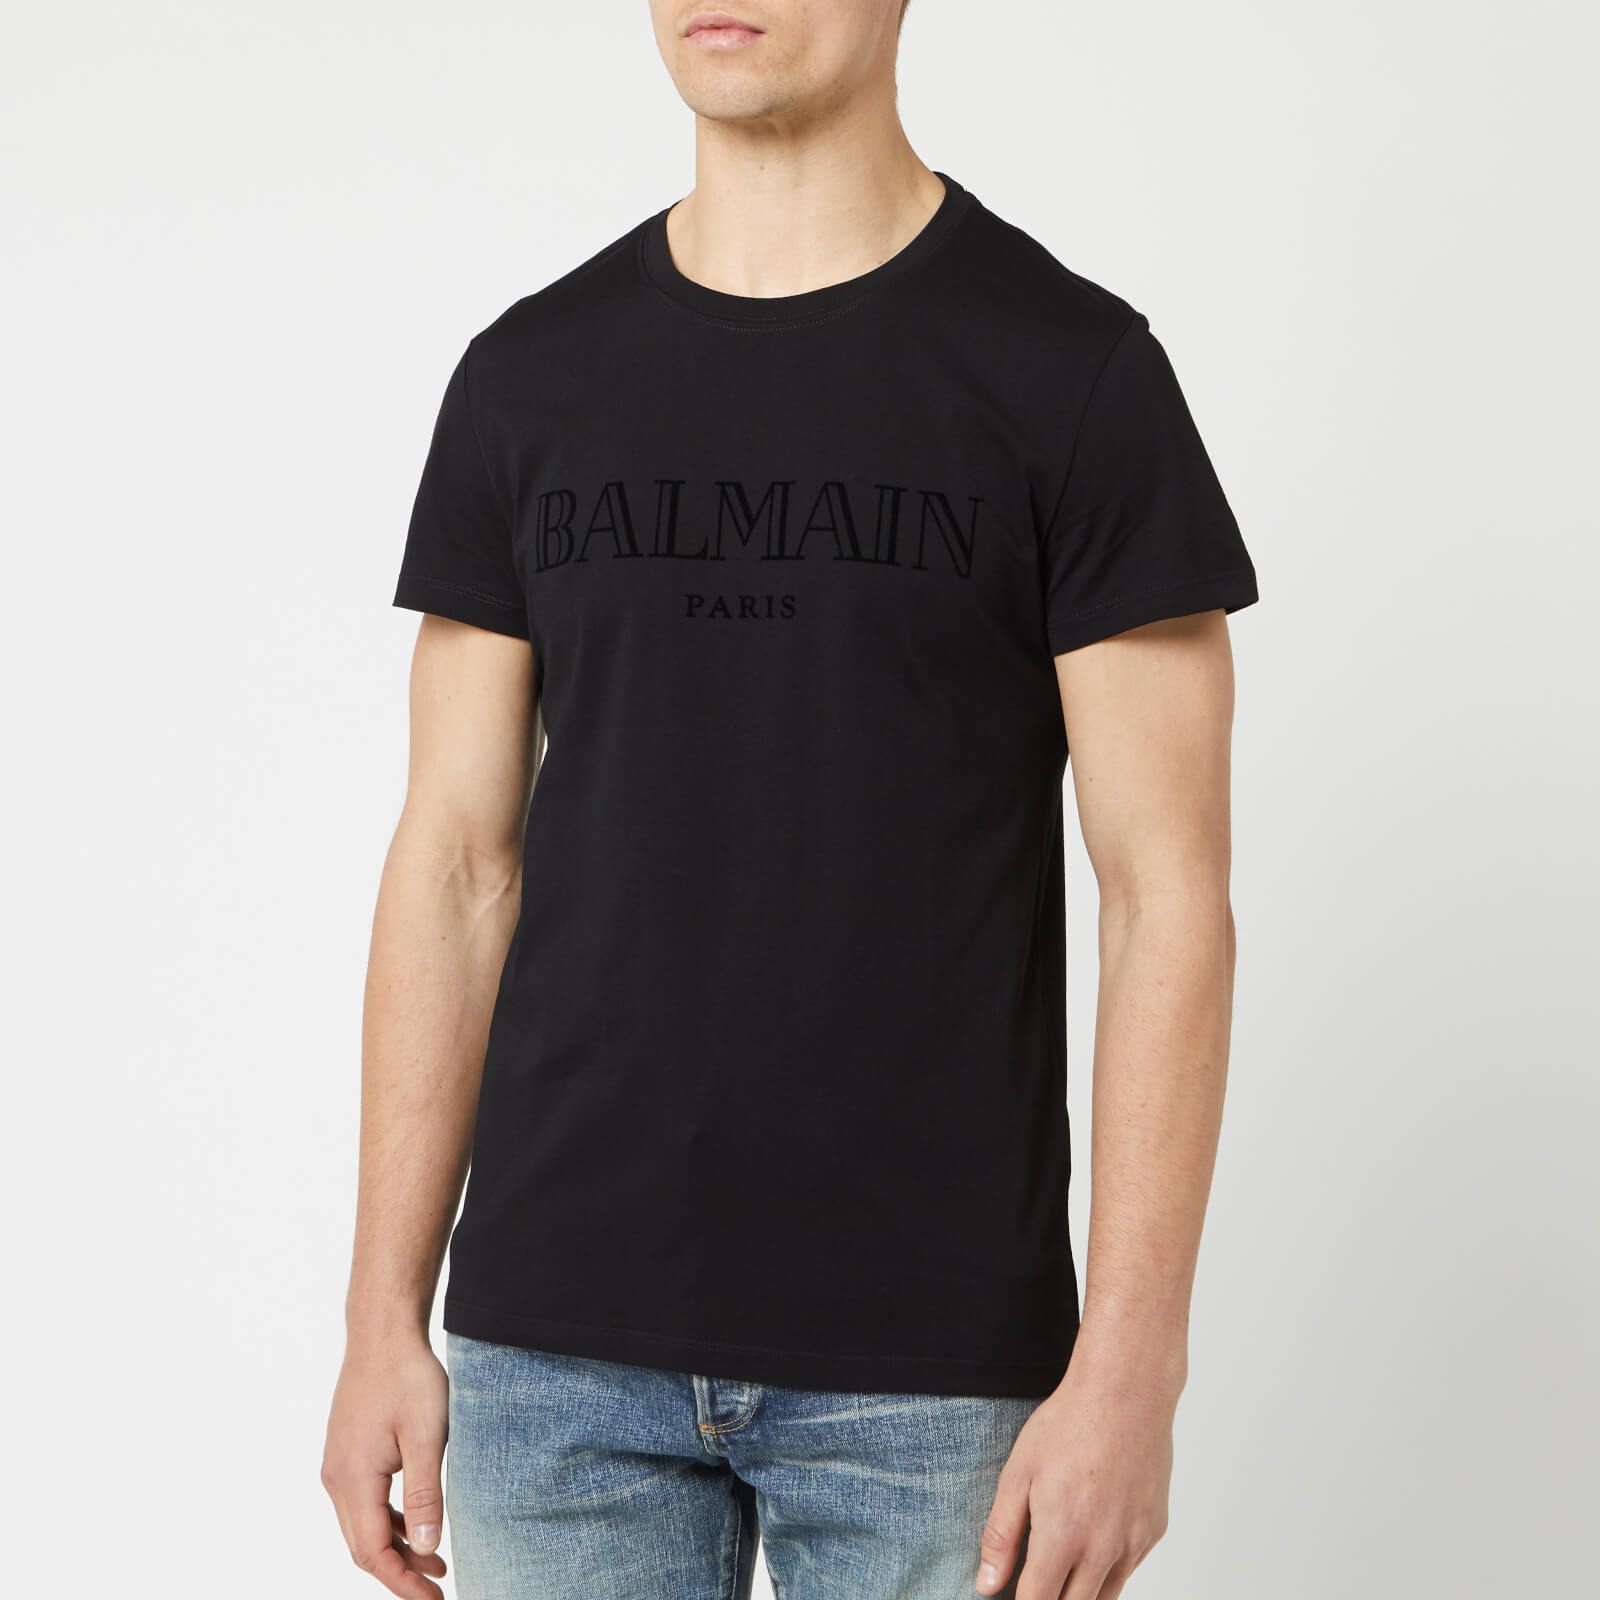 d680cf6e7 Balmain Men's Paris T-Shirt - Noir - Free UK Delivery over £50